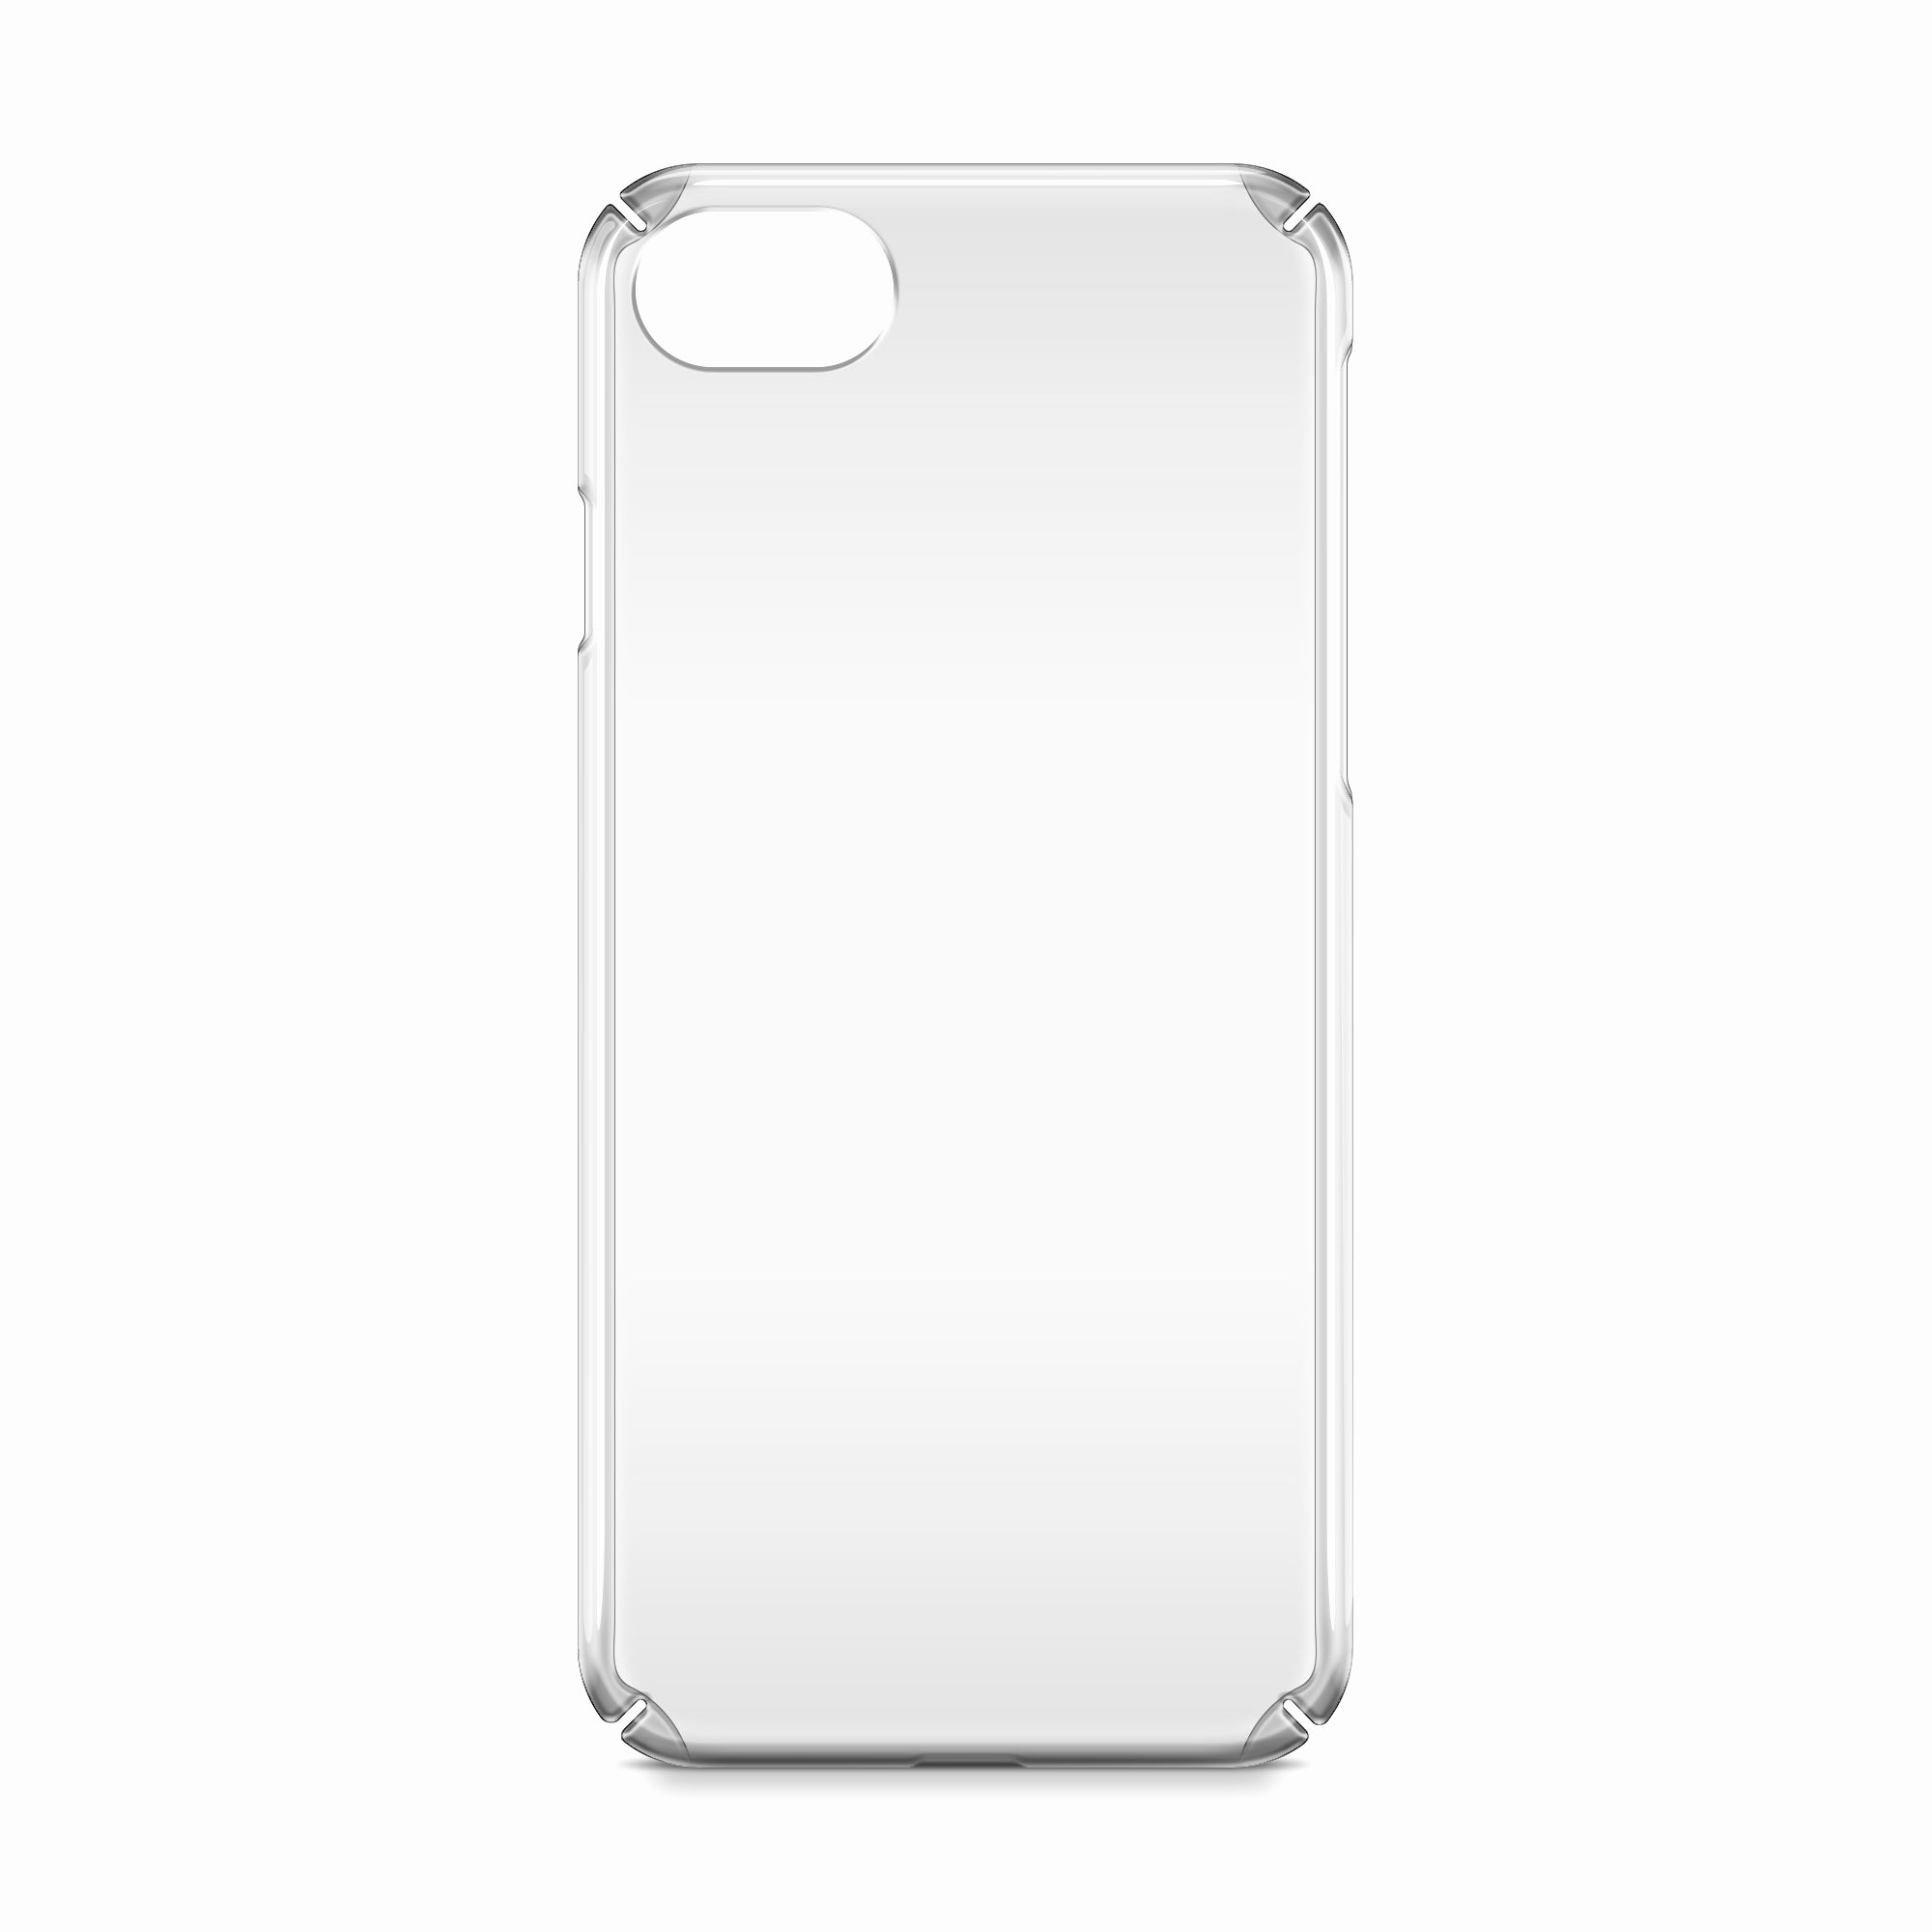 iPhone 7 Uv Pc Case Mockup Back View by